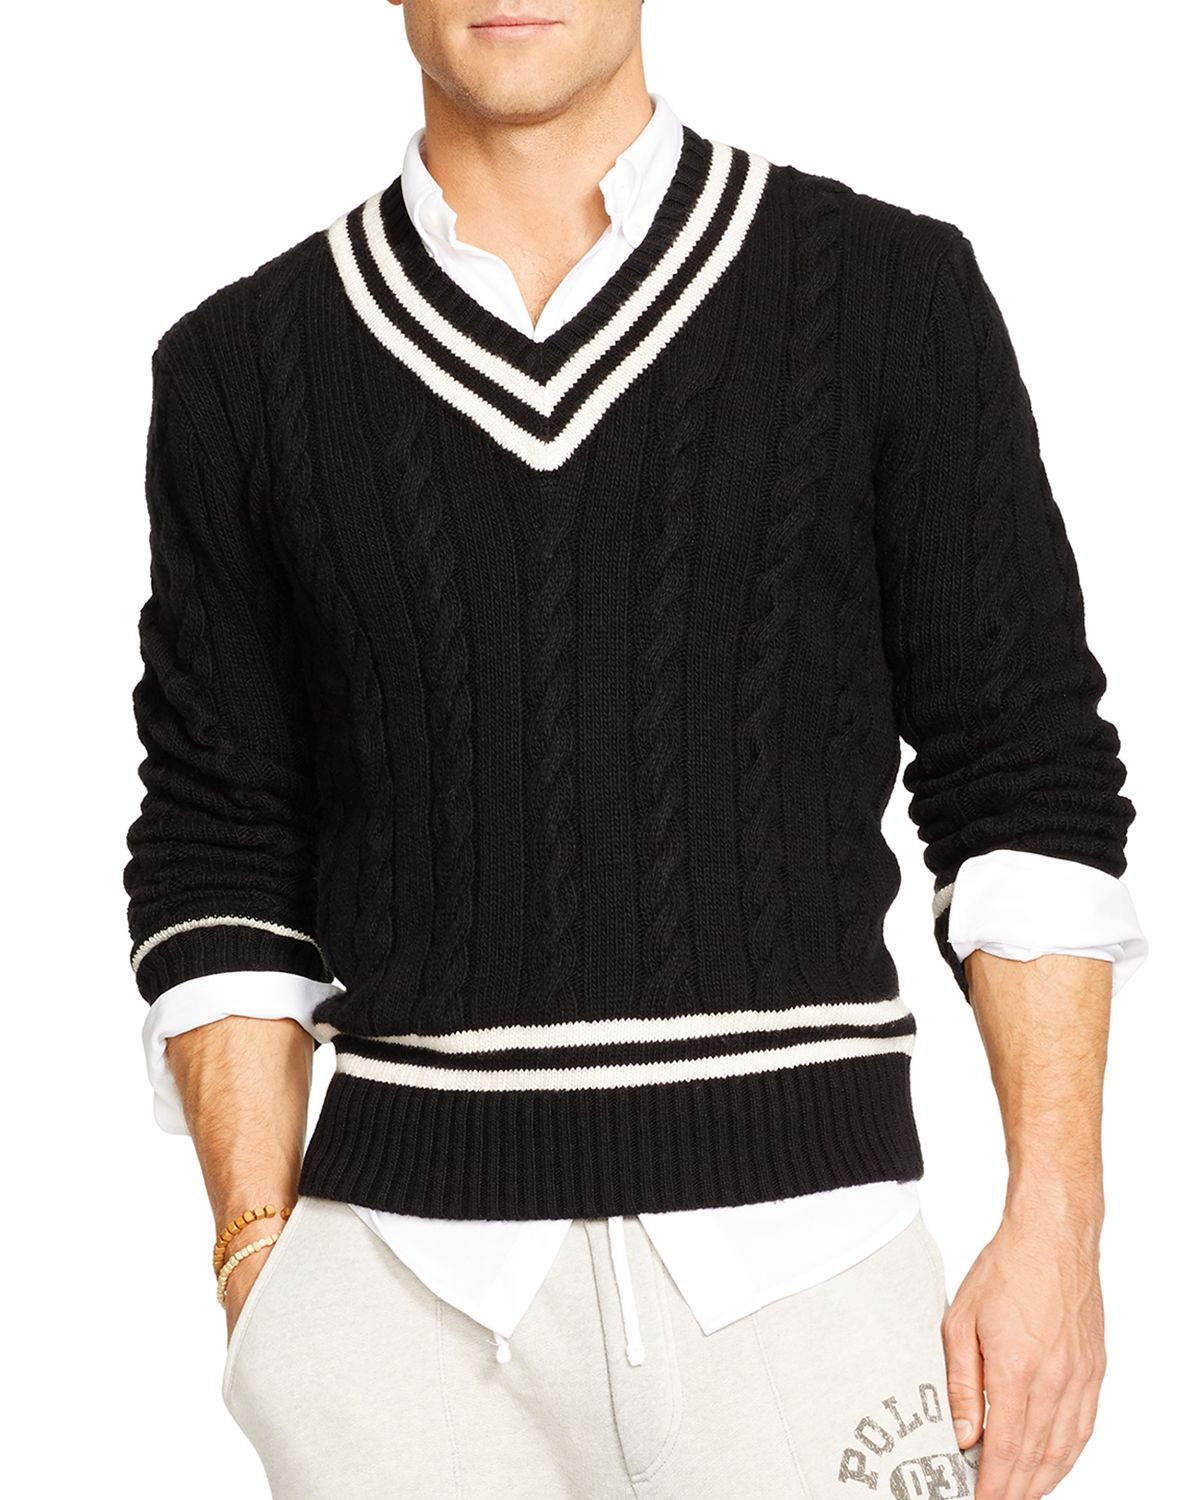 Lyst Ralph Lauren Polo Cable Knit Cricket Sweater In Black For Men